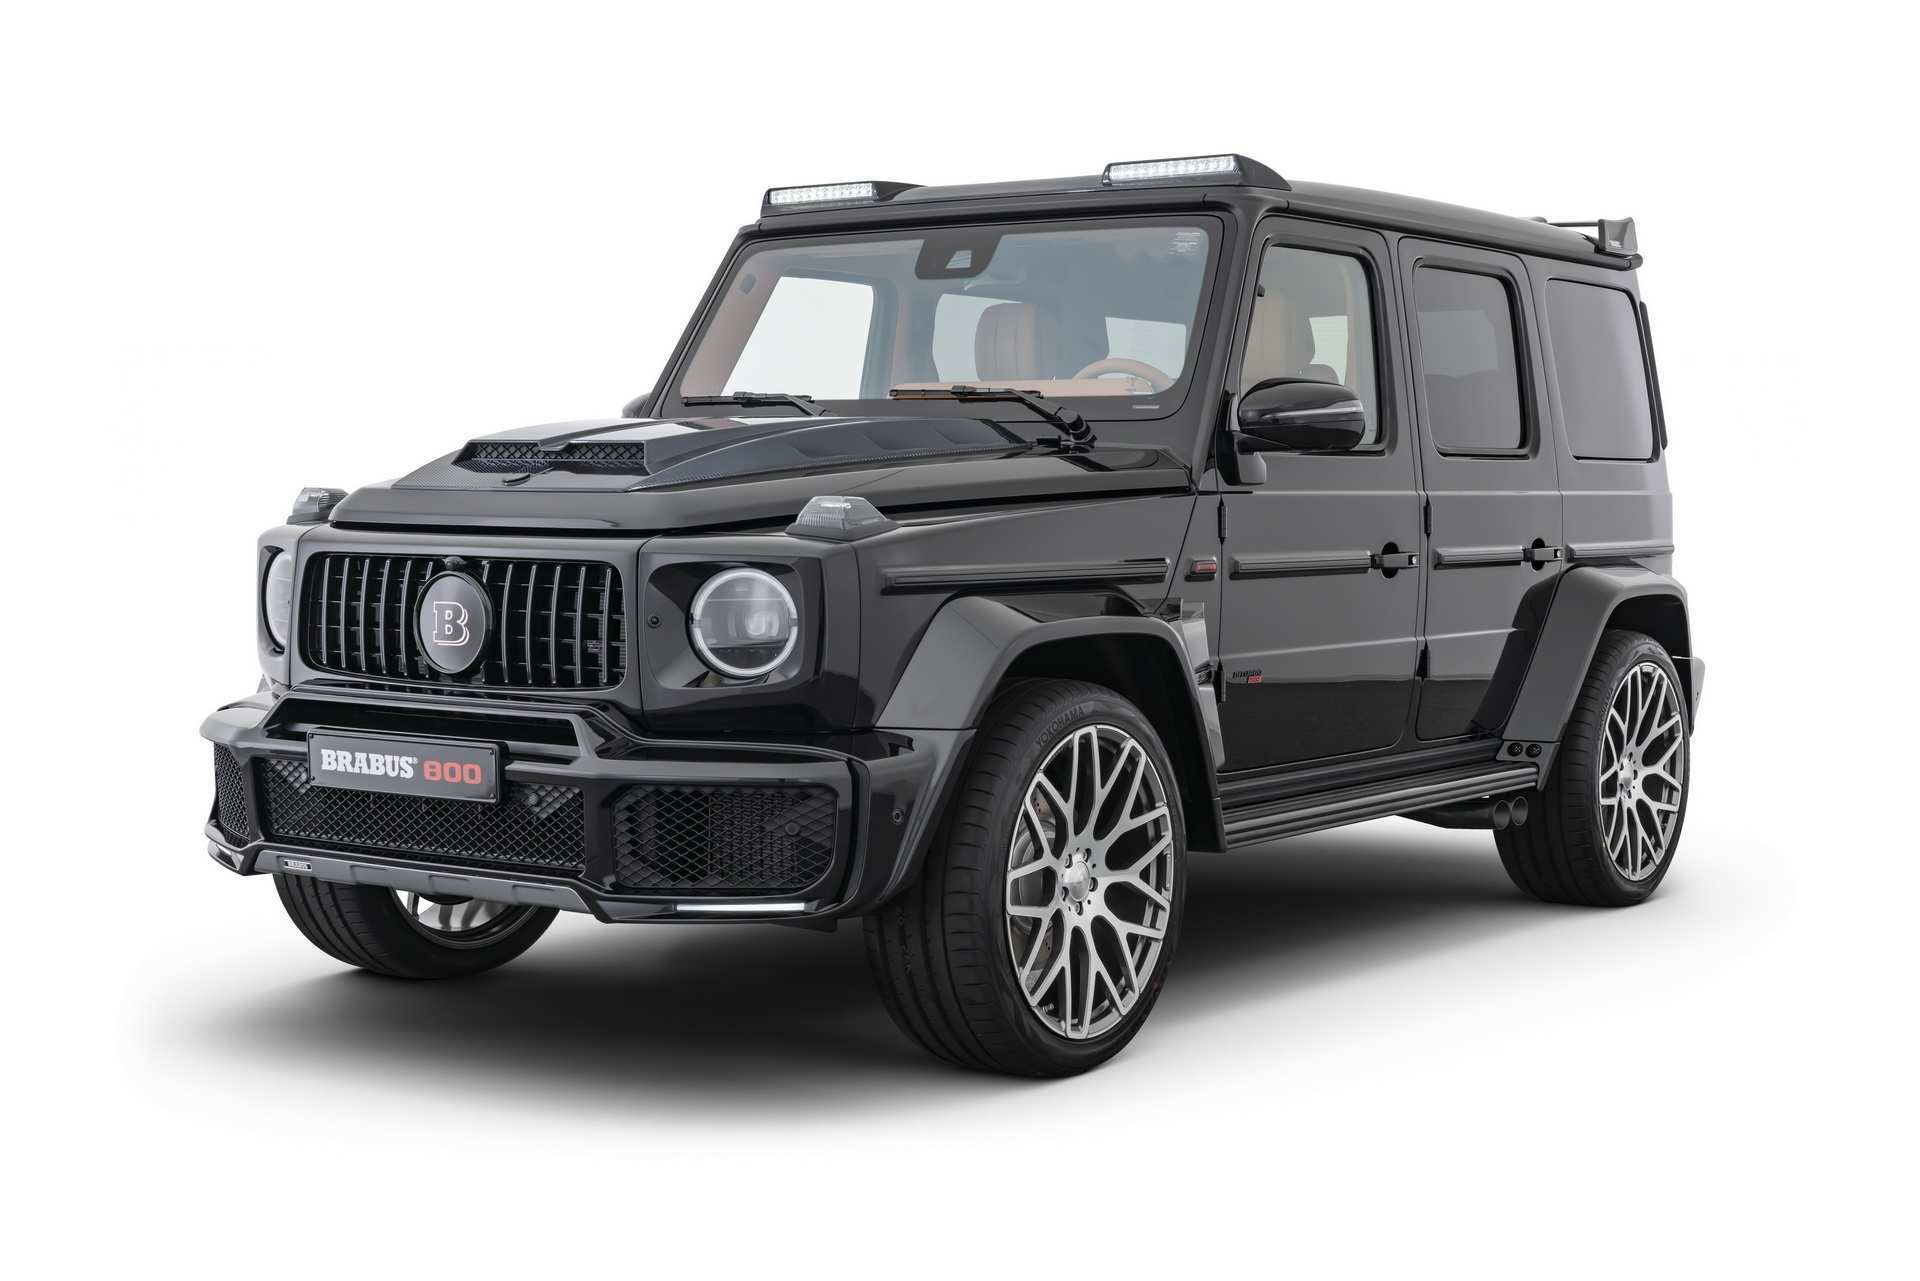 44 All New Mercedes Brabus 2019 Exterior And Interior